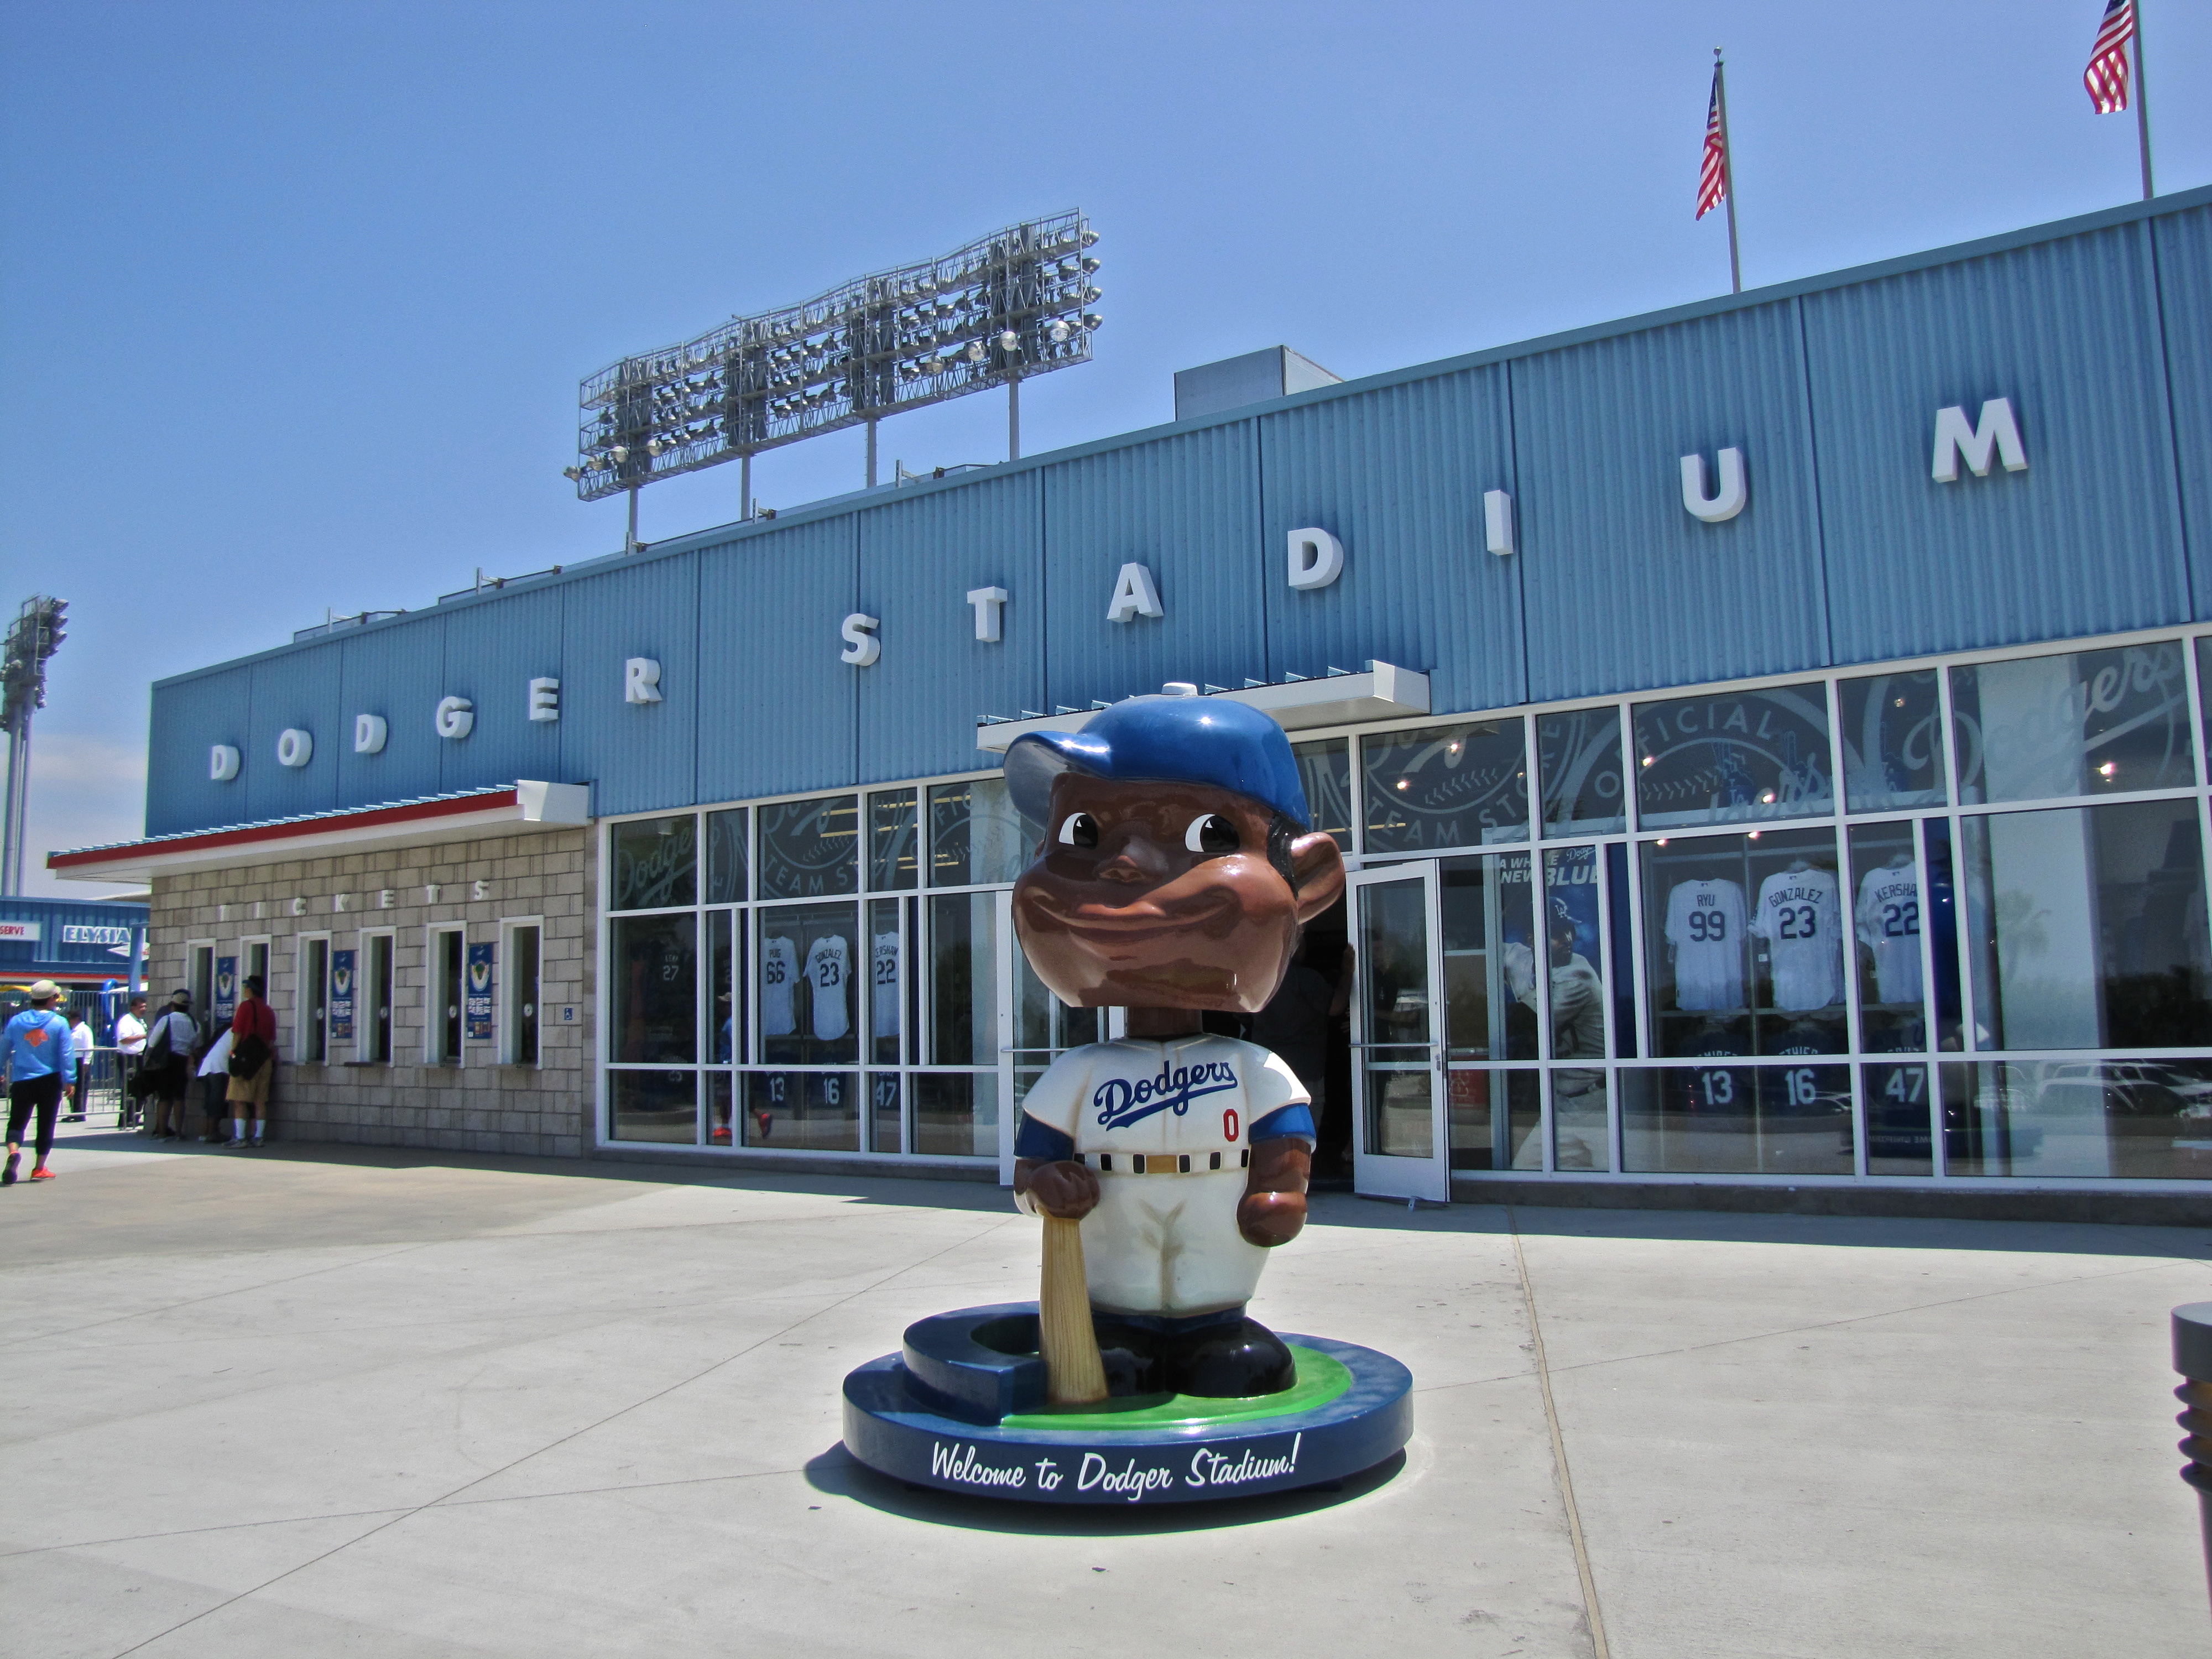 Dodger Stadium – Los Angeles Dodgers | Stadium Journey